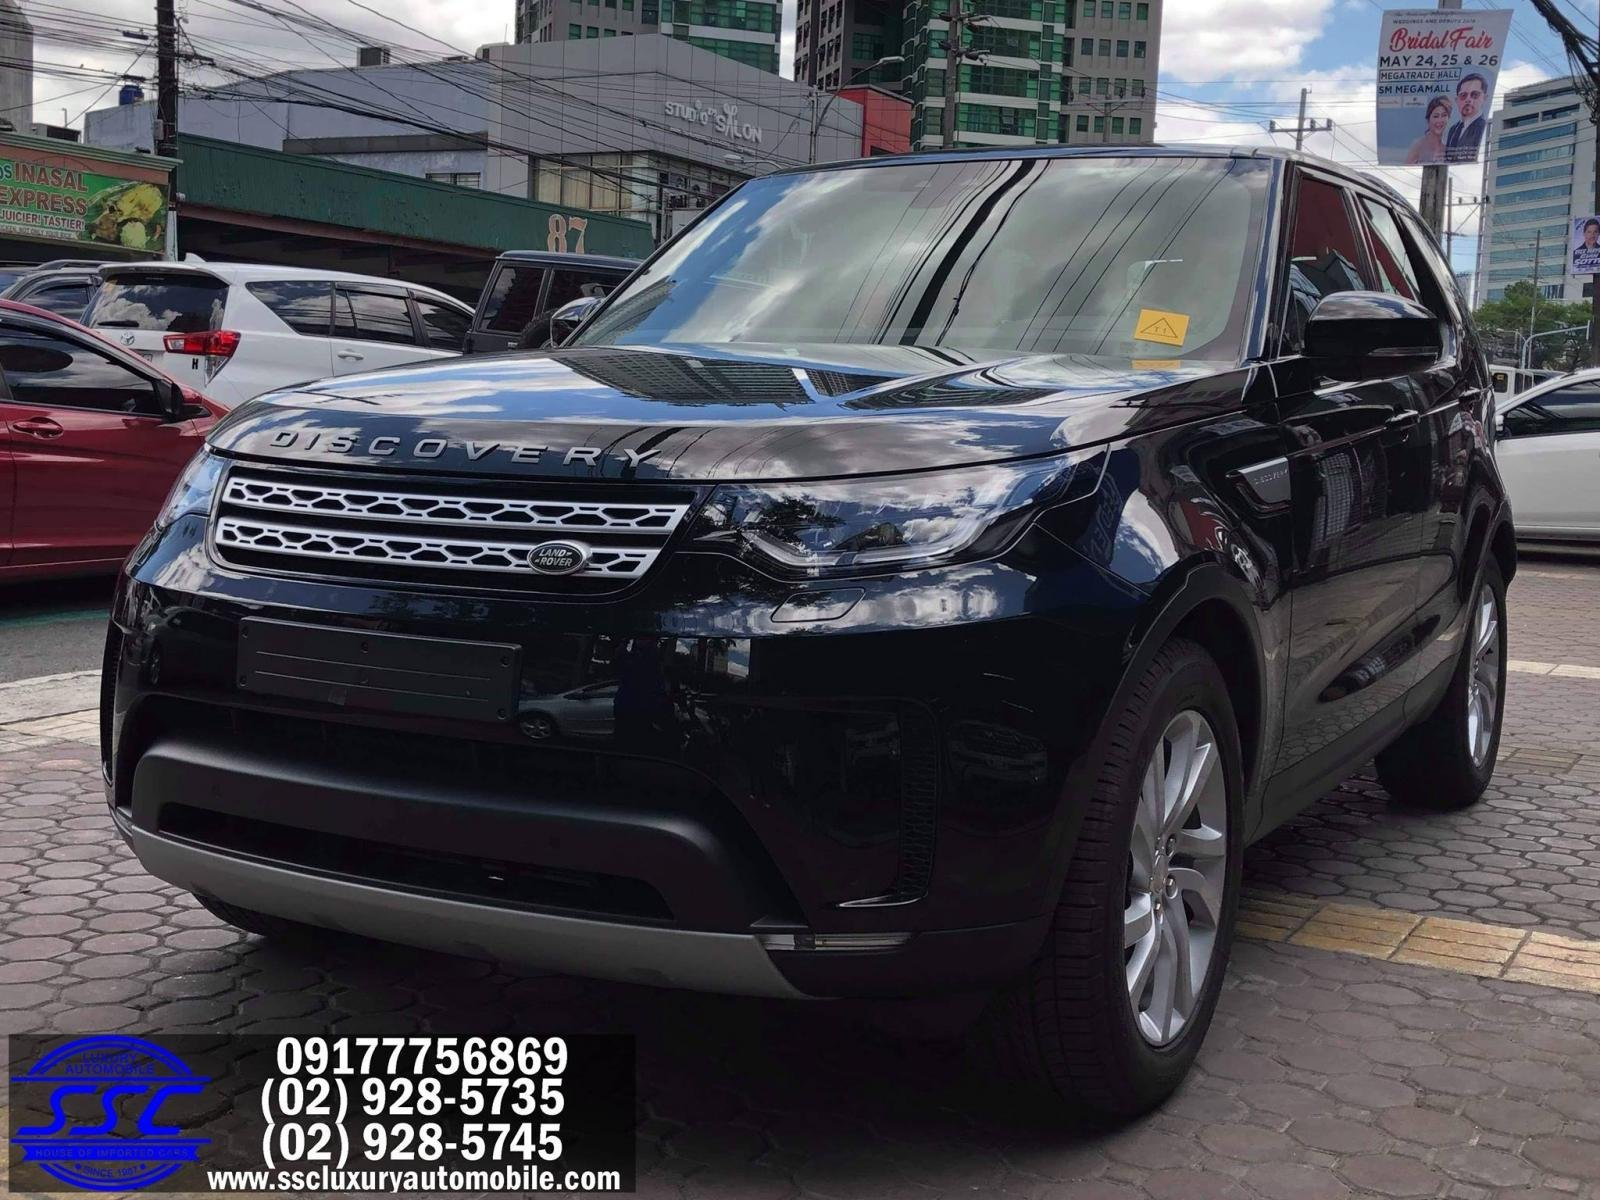 Brand-new Land Rover Discovery front shot